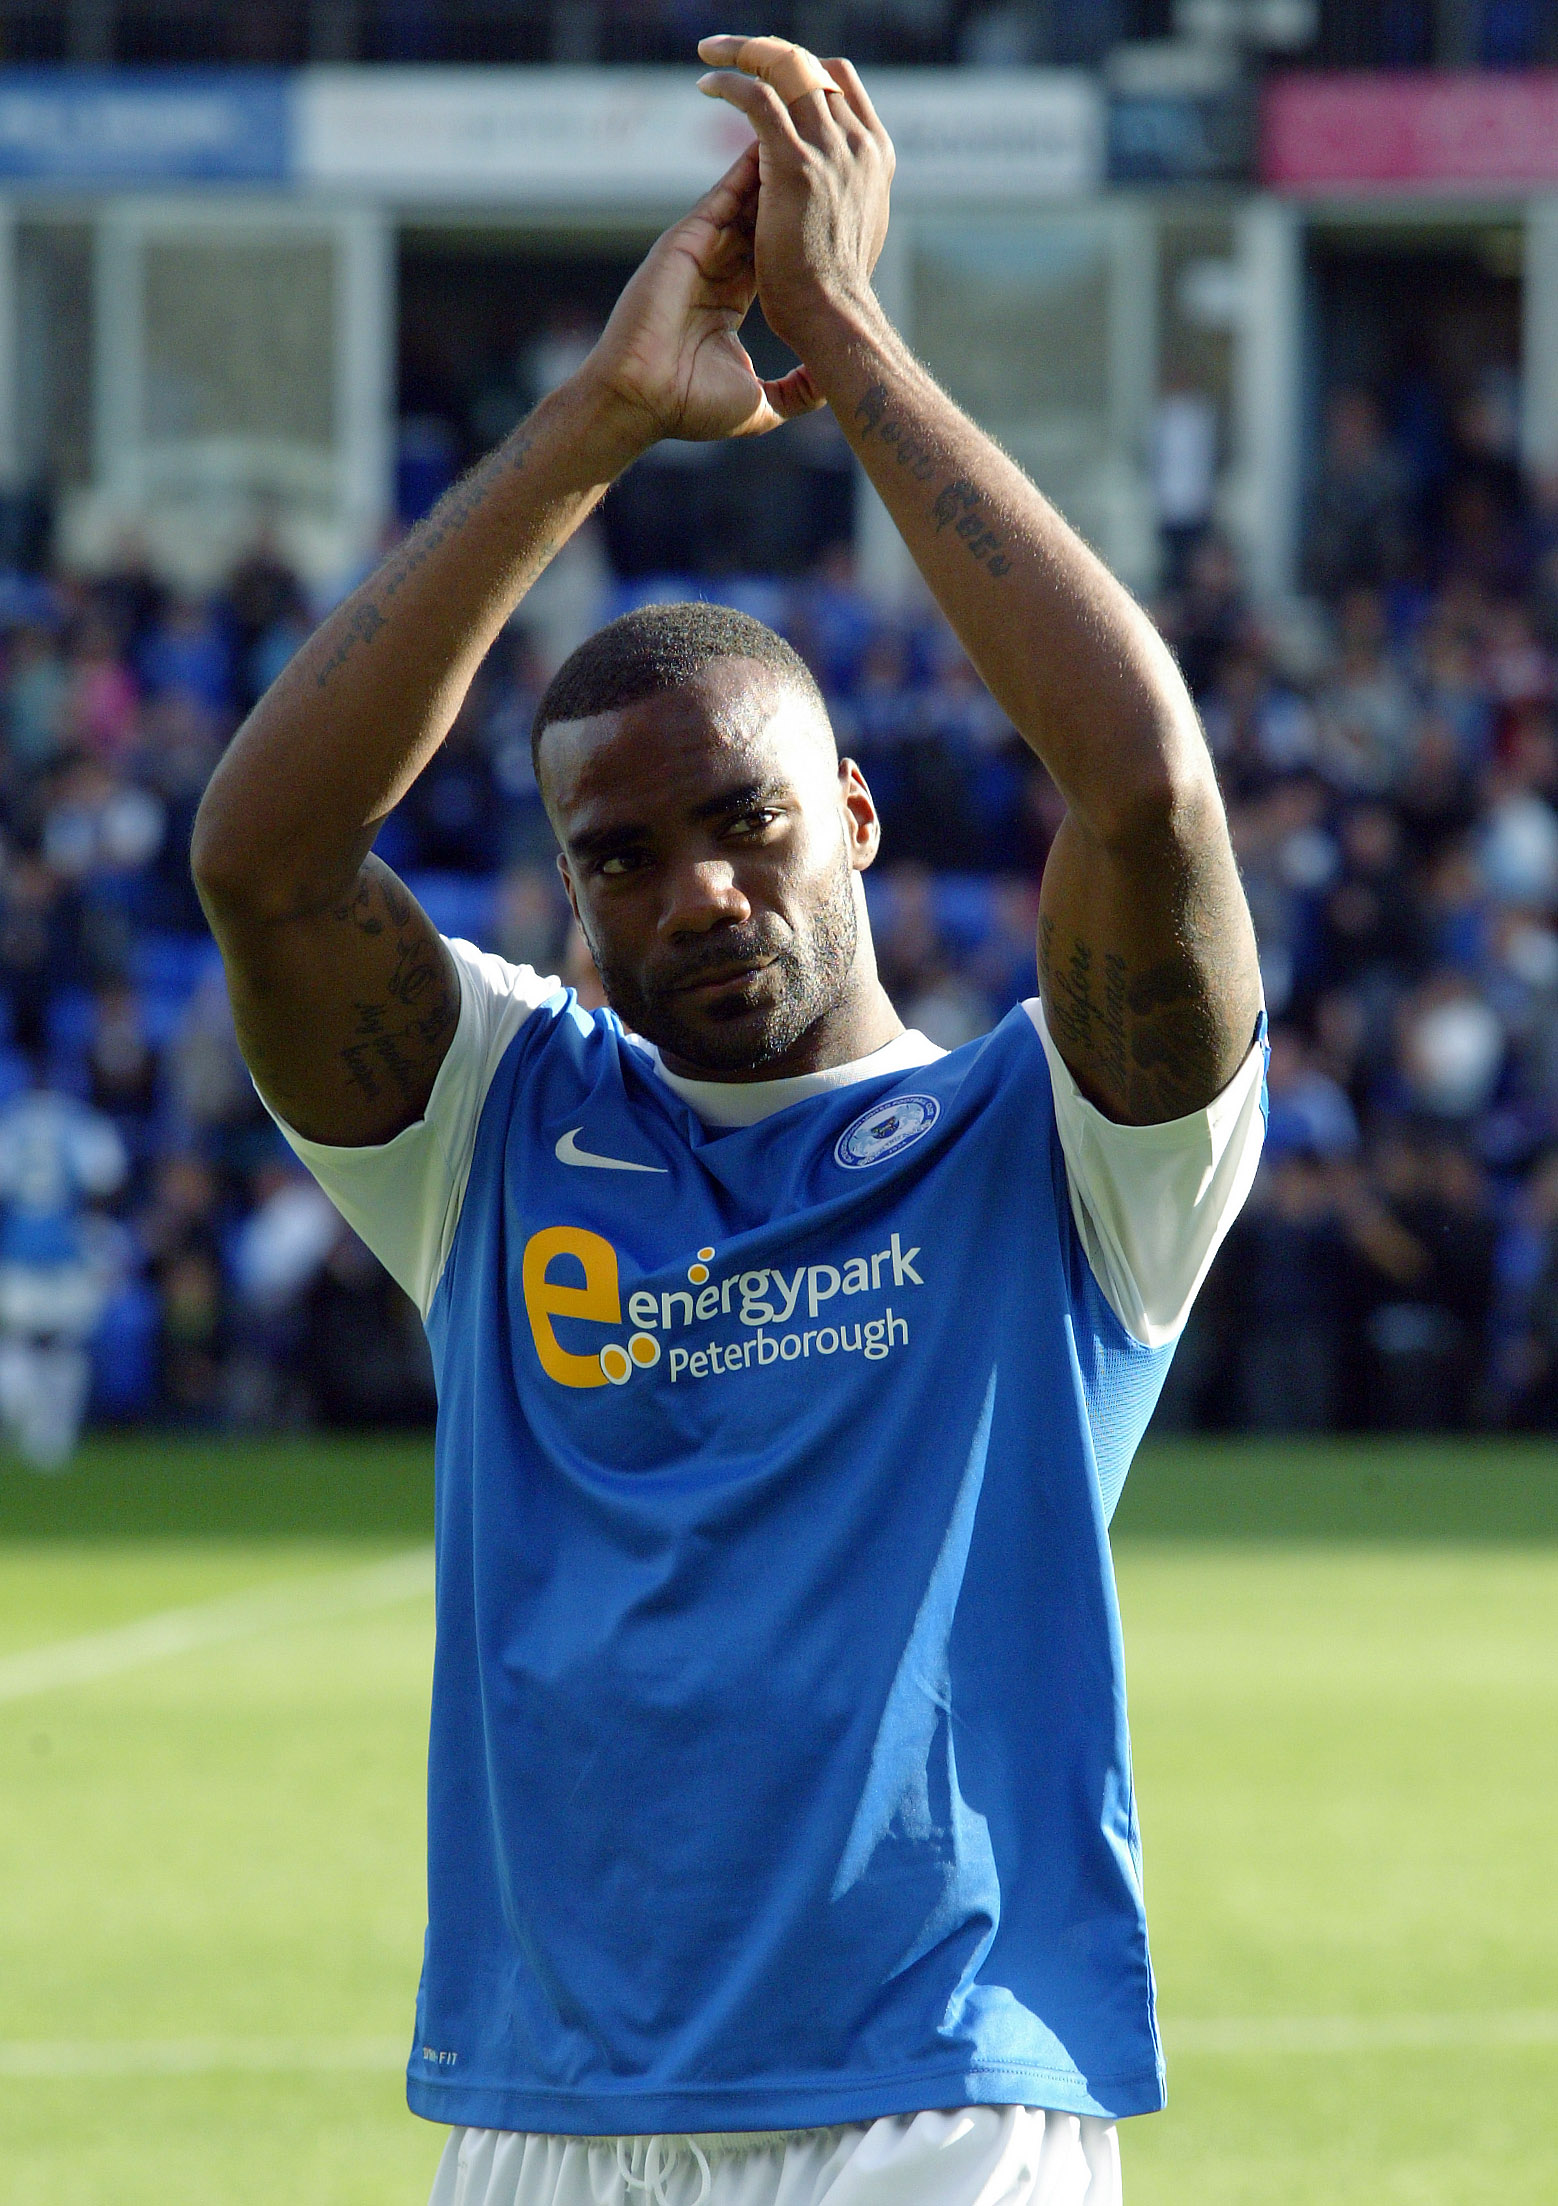 Emile Sinclair (Peterborough United) applaudes the fans at the end of the match